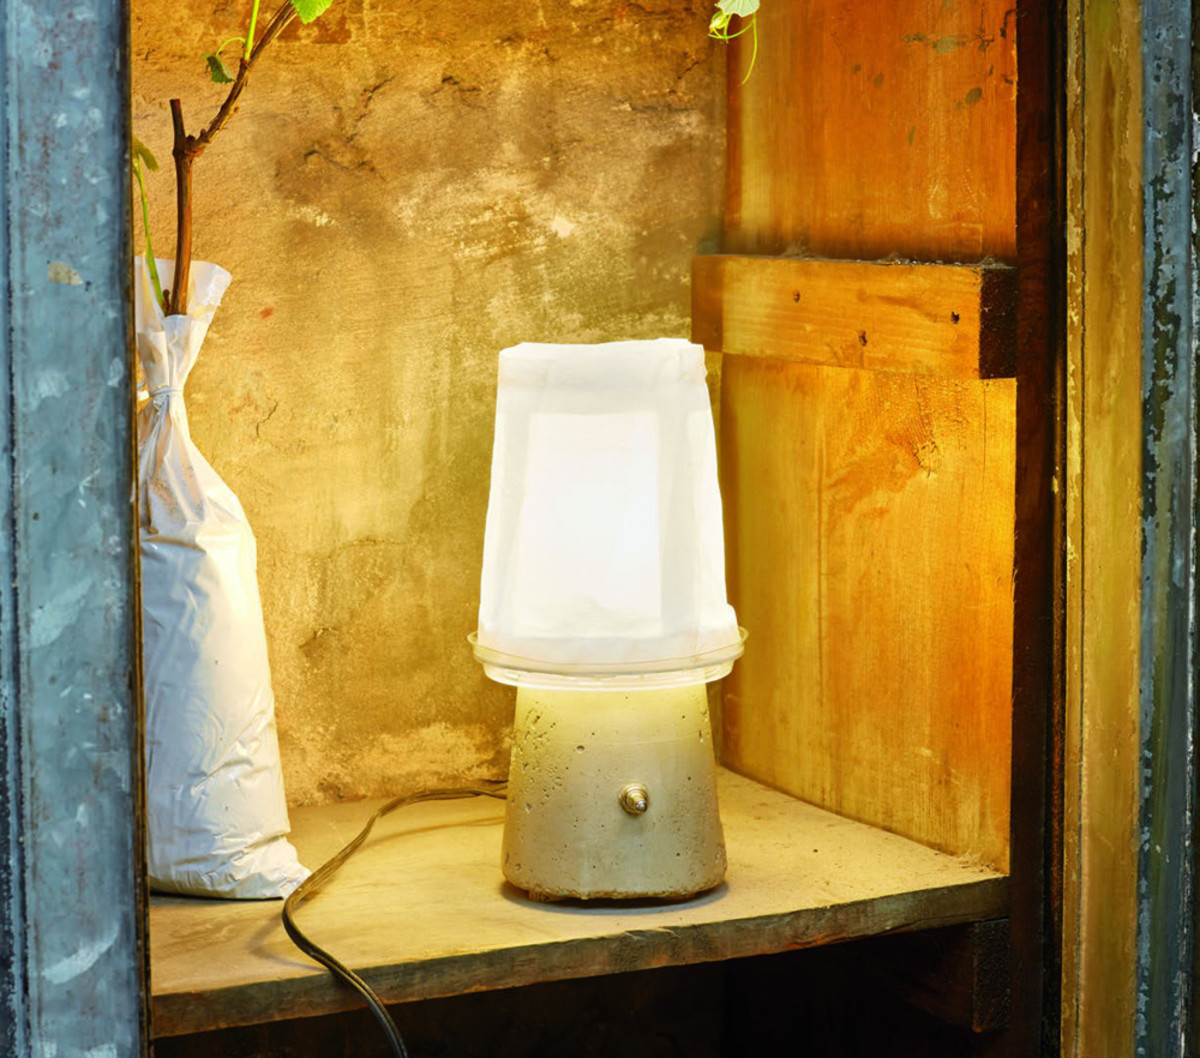 With just a handful of common materials such as yogurt containers and cement, you can make your own DIY yogurt lamp just like this one.